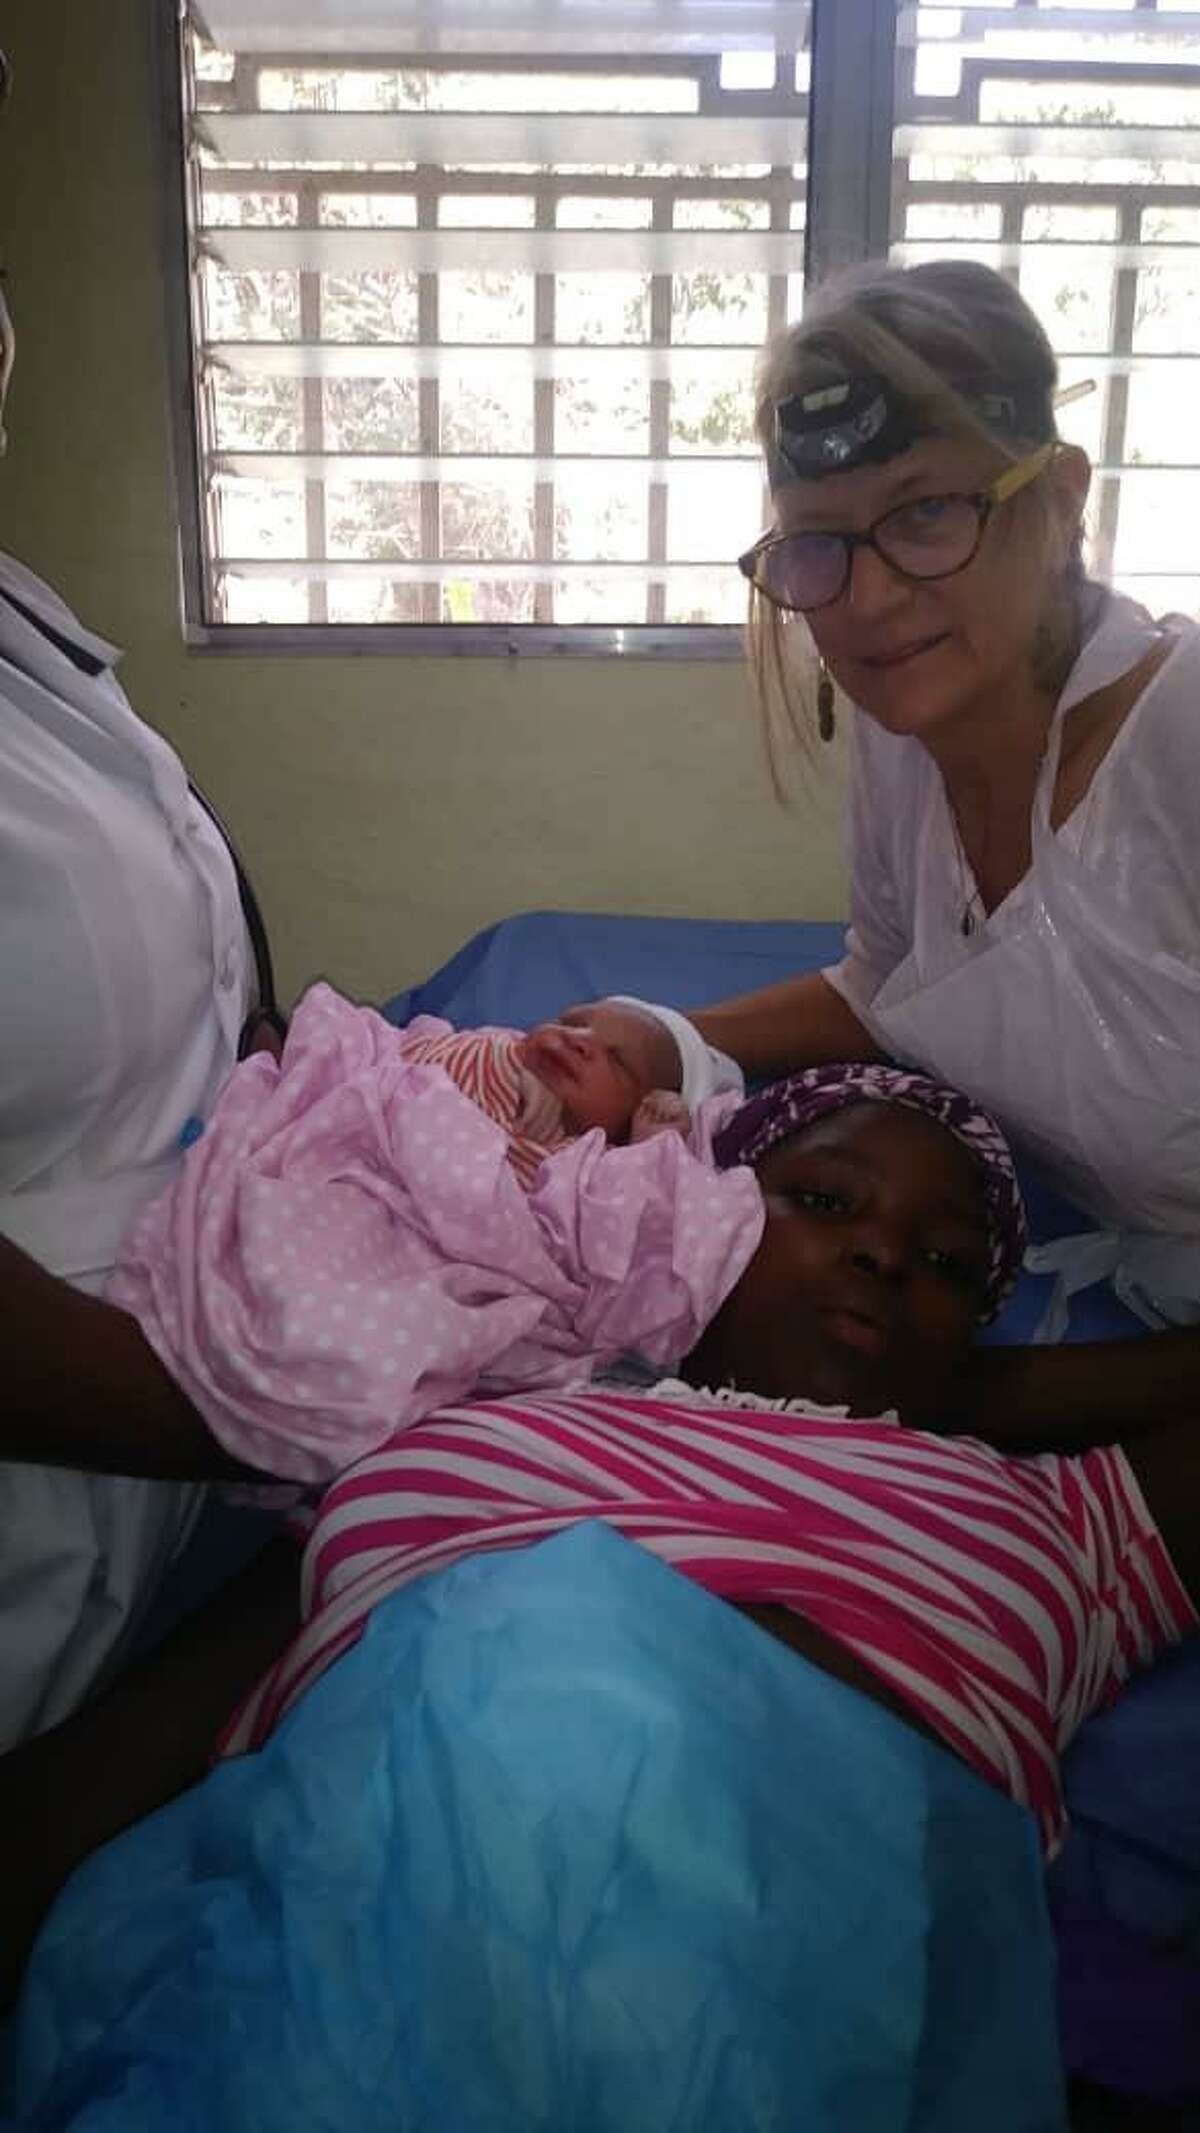 A mom, newborn and Lindenmeyr - minutes after giving birth at the healthcare clinic